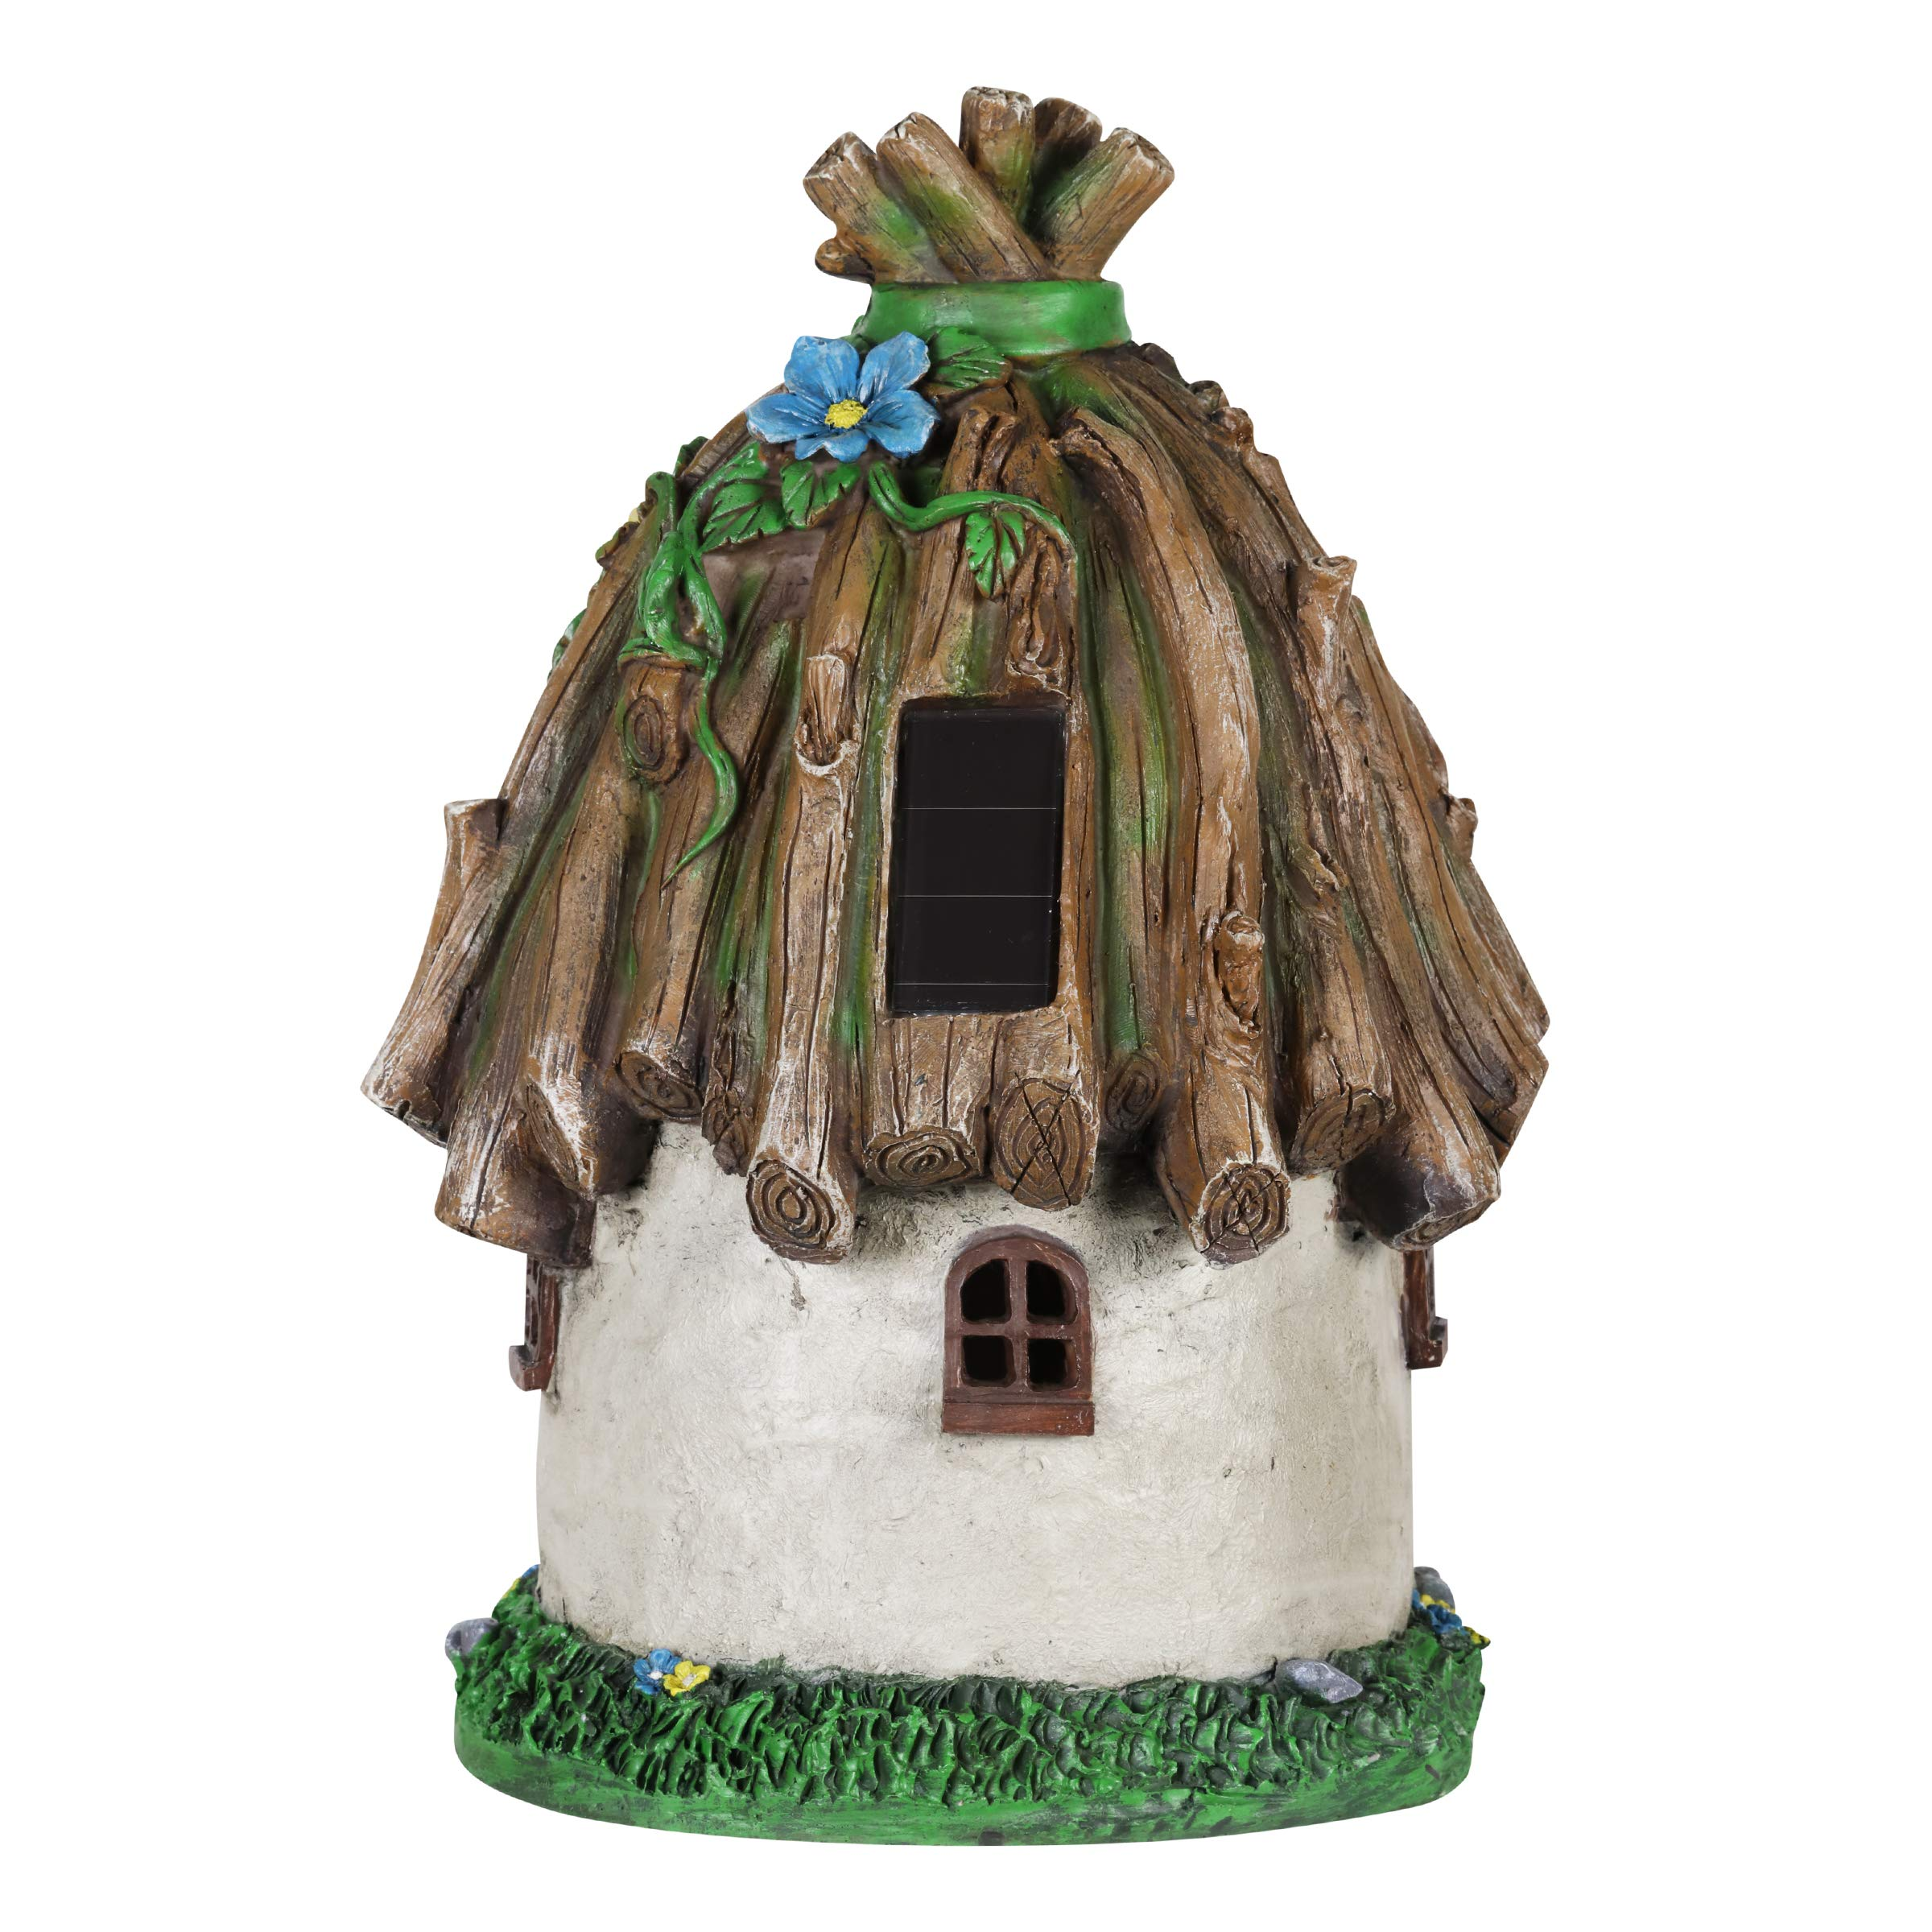 Exhart Twigs Roof Fairy House Outdoor Decor - Fairy Cottage Resin Statue with Solar Garden Lights, Miniature Fairy Hut Solar Home Decor for a Magical Fairy Garden, 9'' L x 9'' W x 15'' H by Exhart (Image #7)